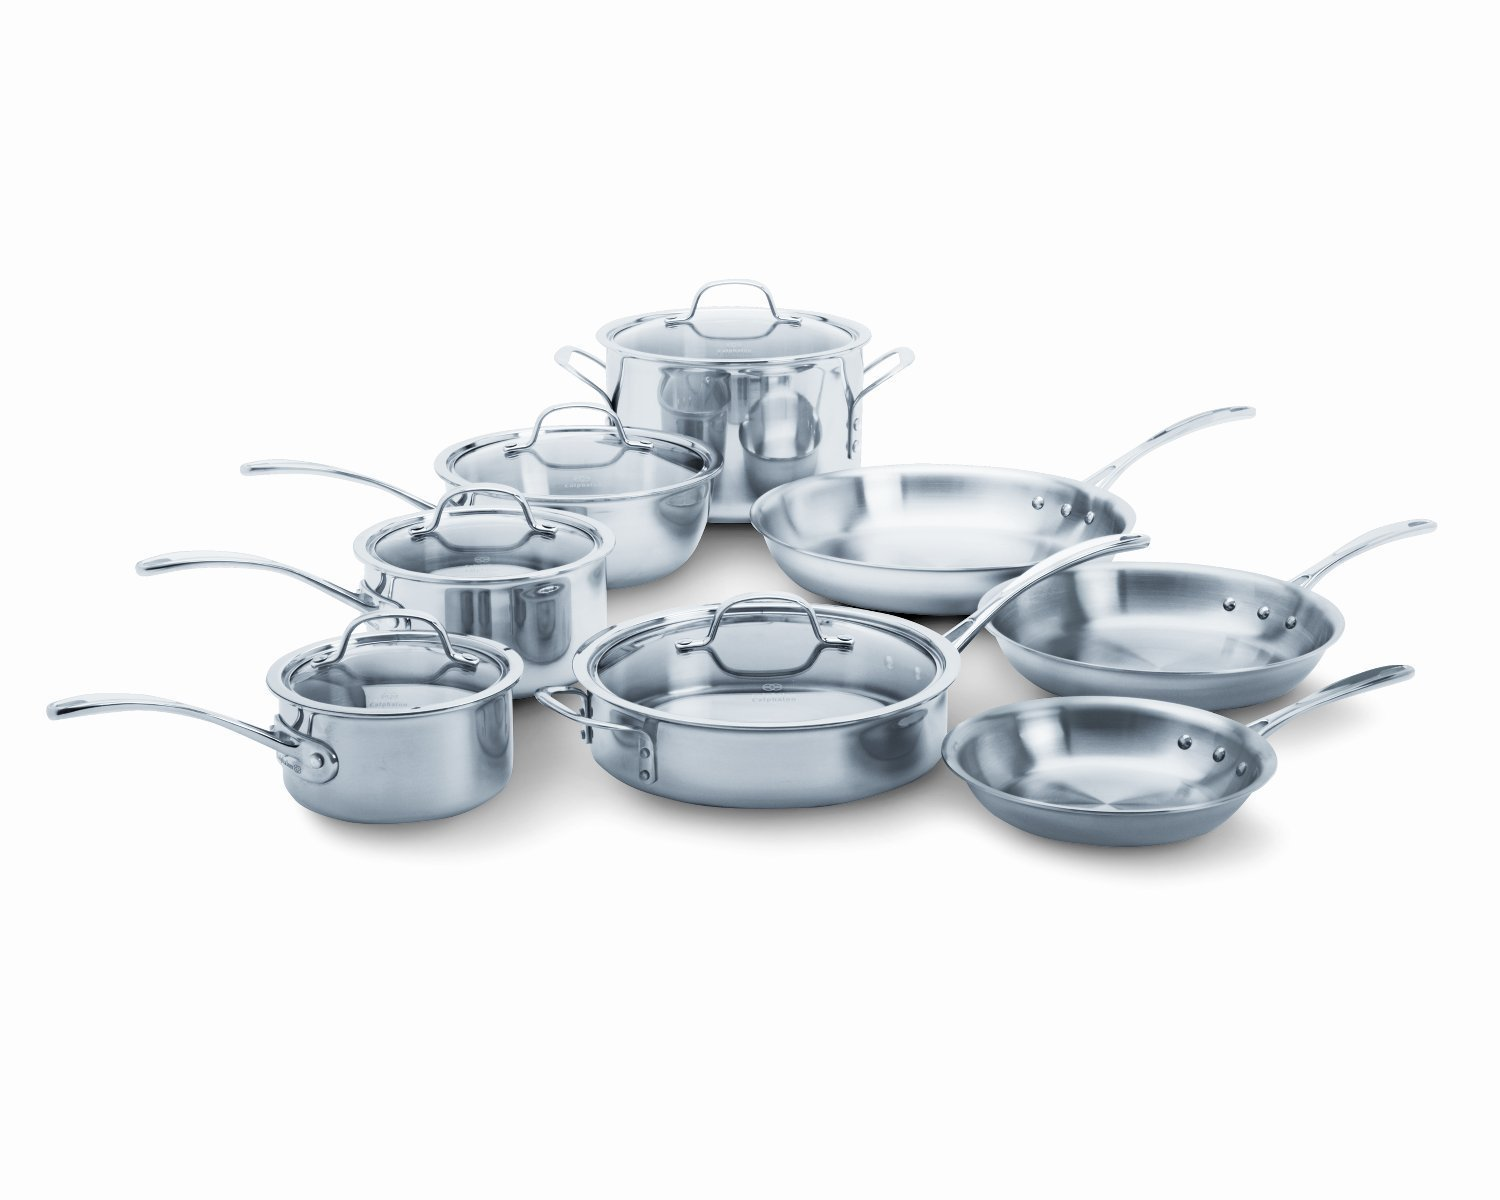 Review of Calphalon Tri-Ply Stainless Steel 13-Piece Cookware Set